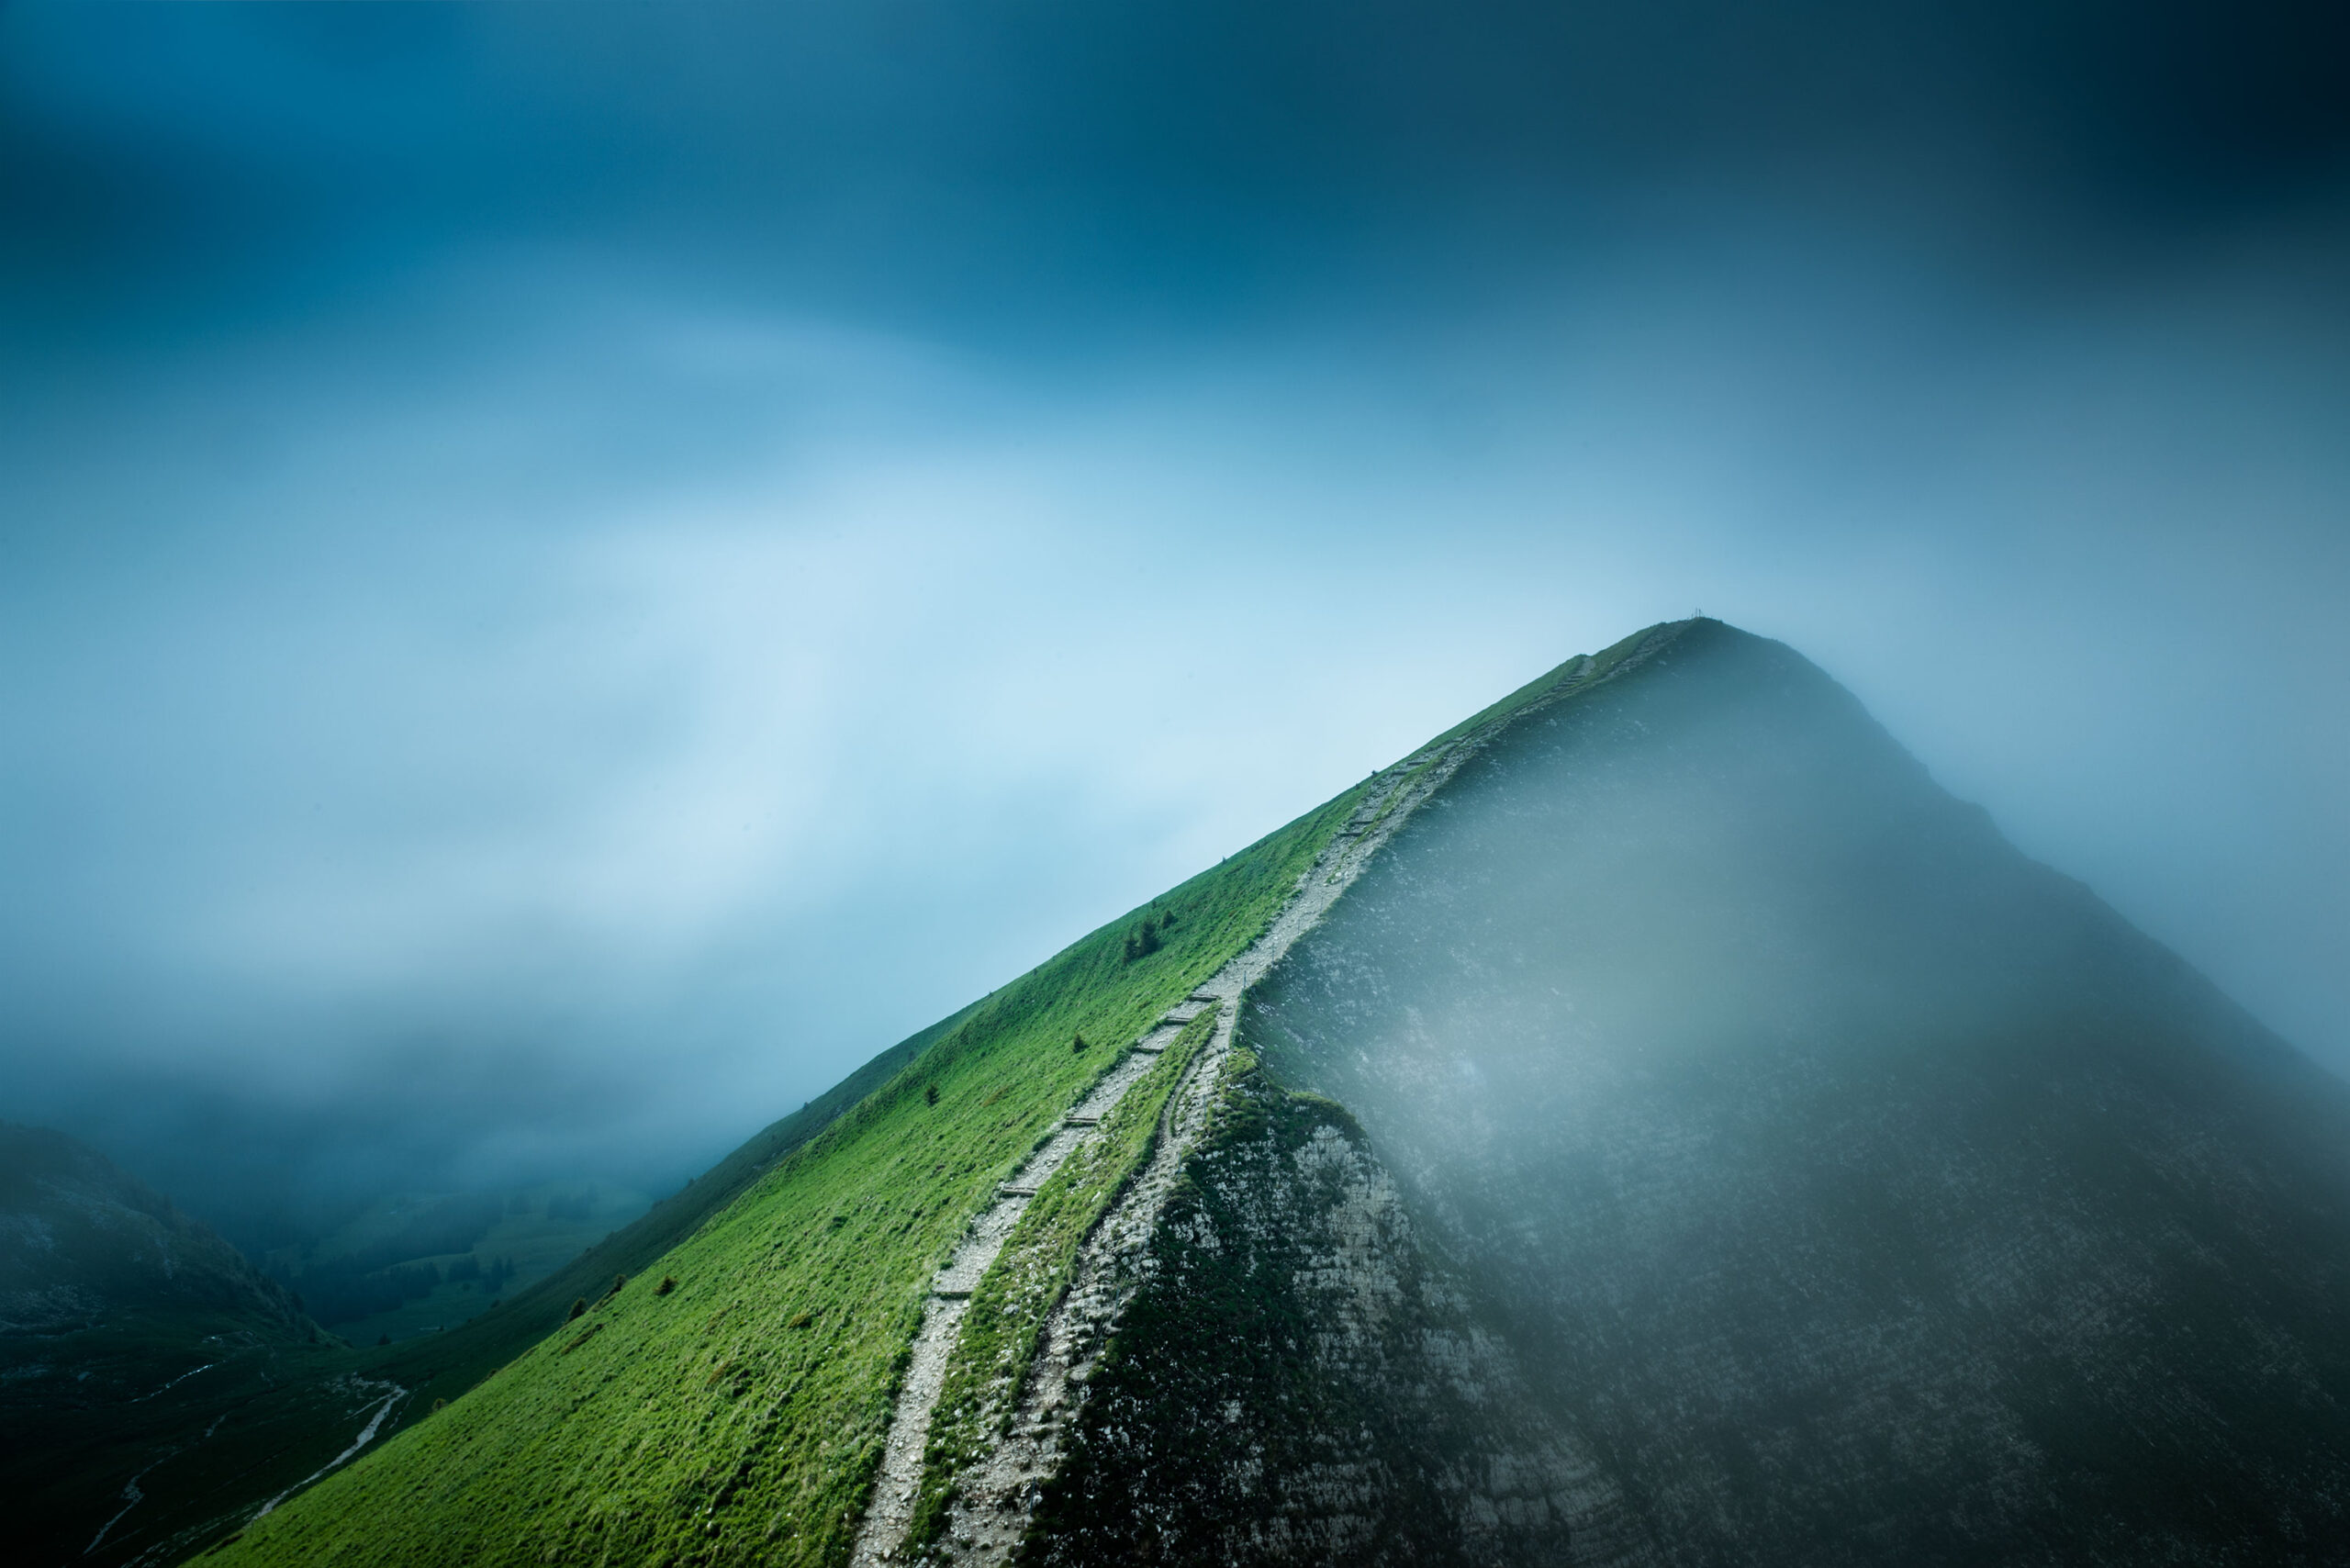 Long time exposure photography of the Moléson Mountain located in Canton Fribourg, Switzerland Image by Jennifer Esseiva.